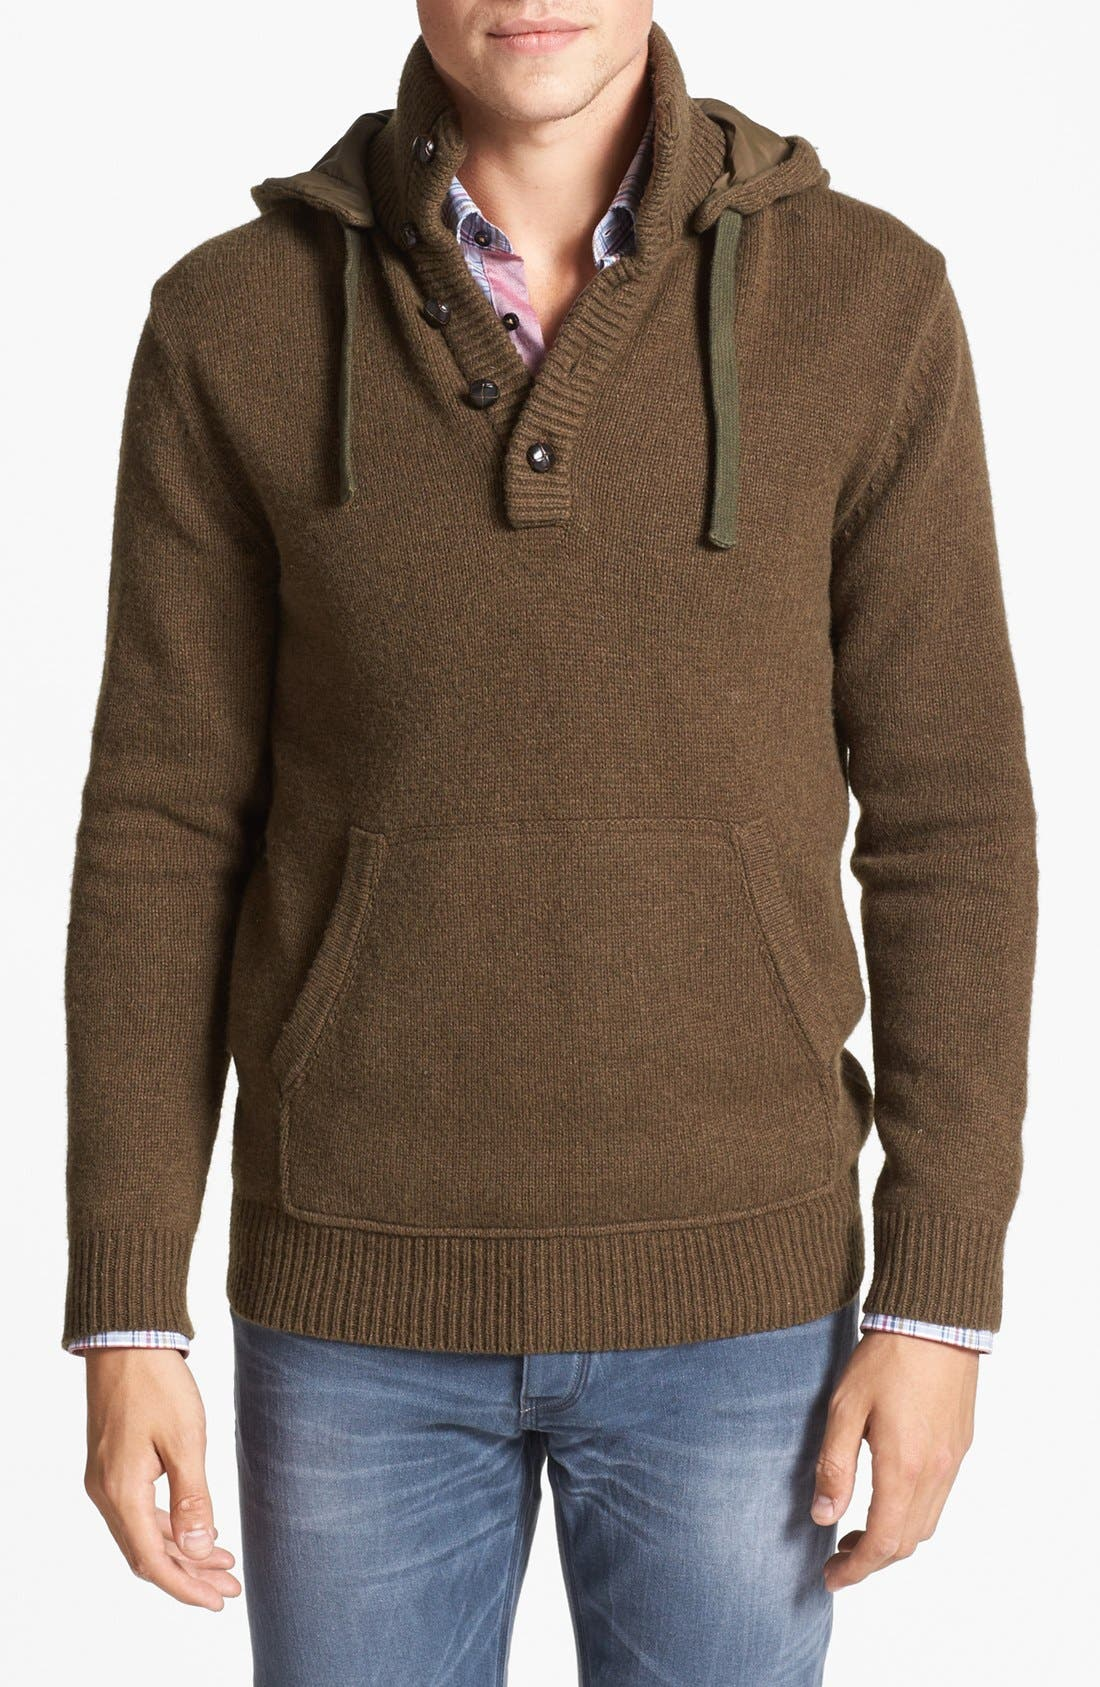 'Infantry' Wool Blend Sweater,                             Main thumbnail 1, color,                             341